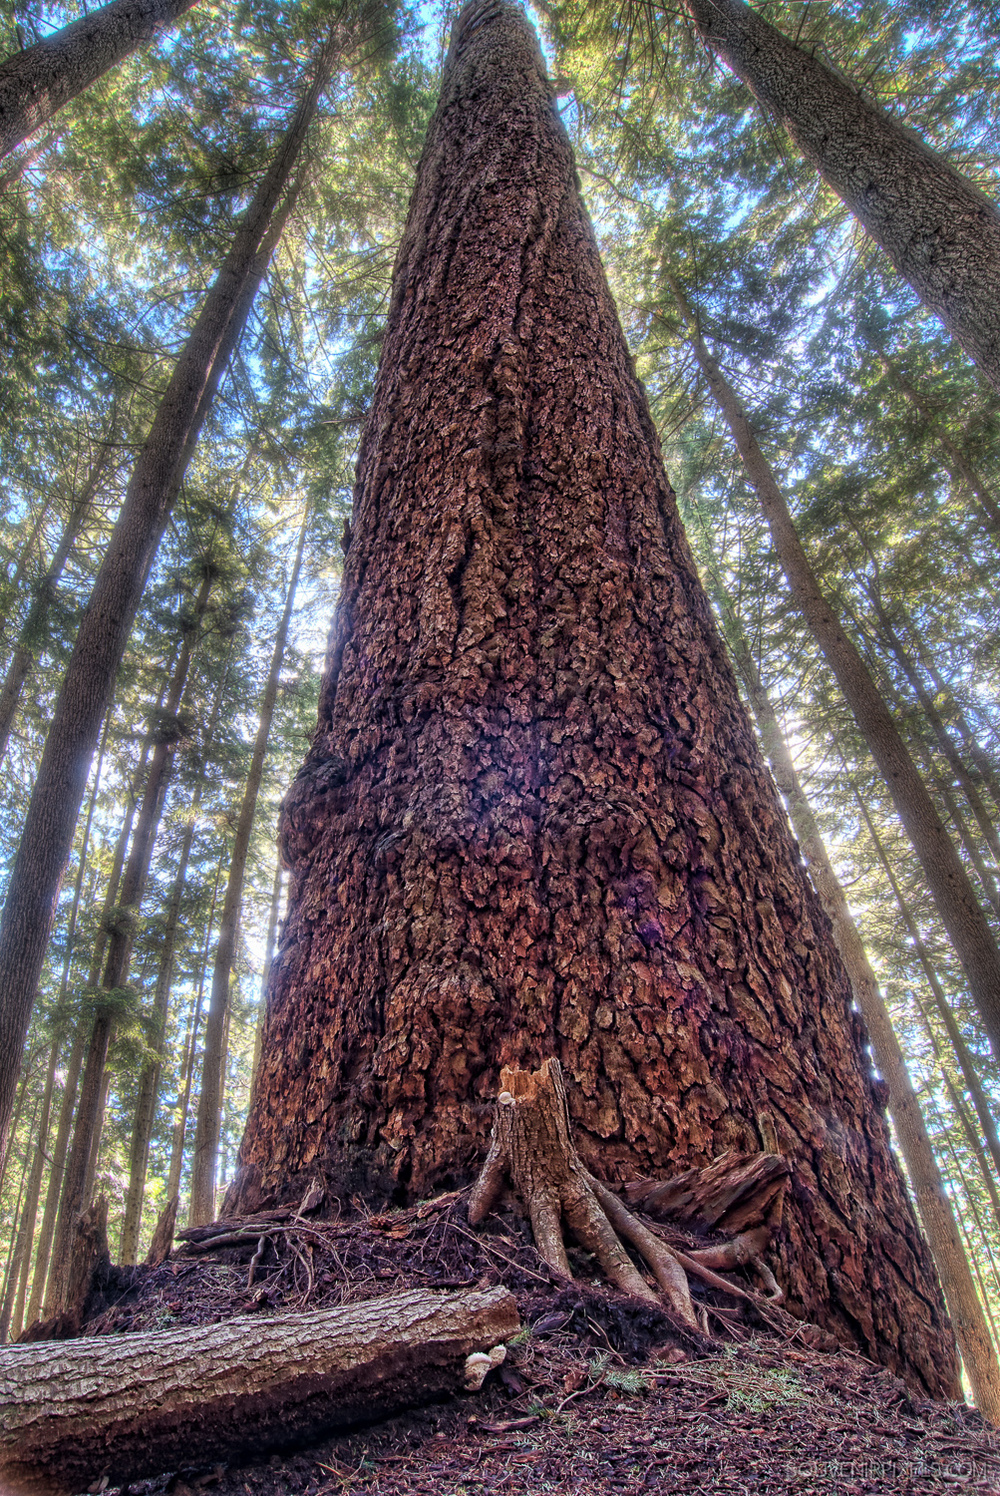 P0175-Vertical of Massive Tree in Forest-XLarge.jpg